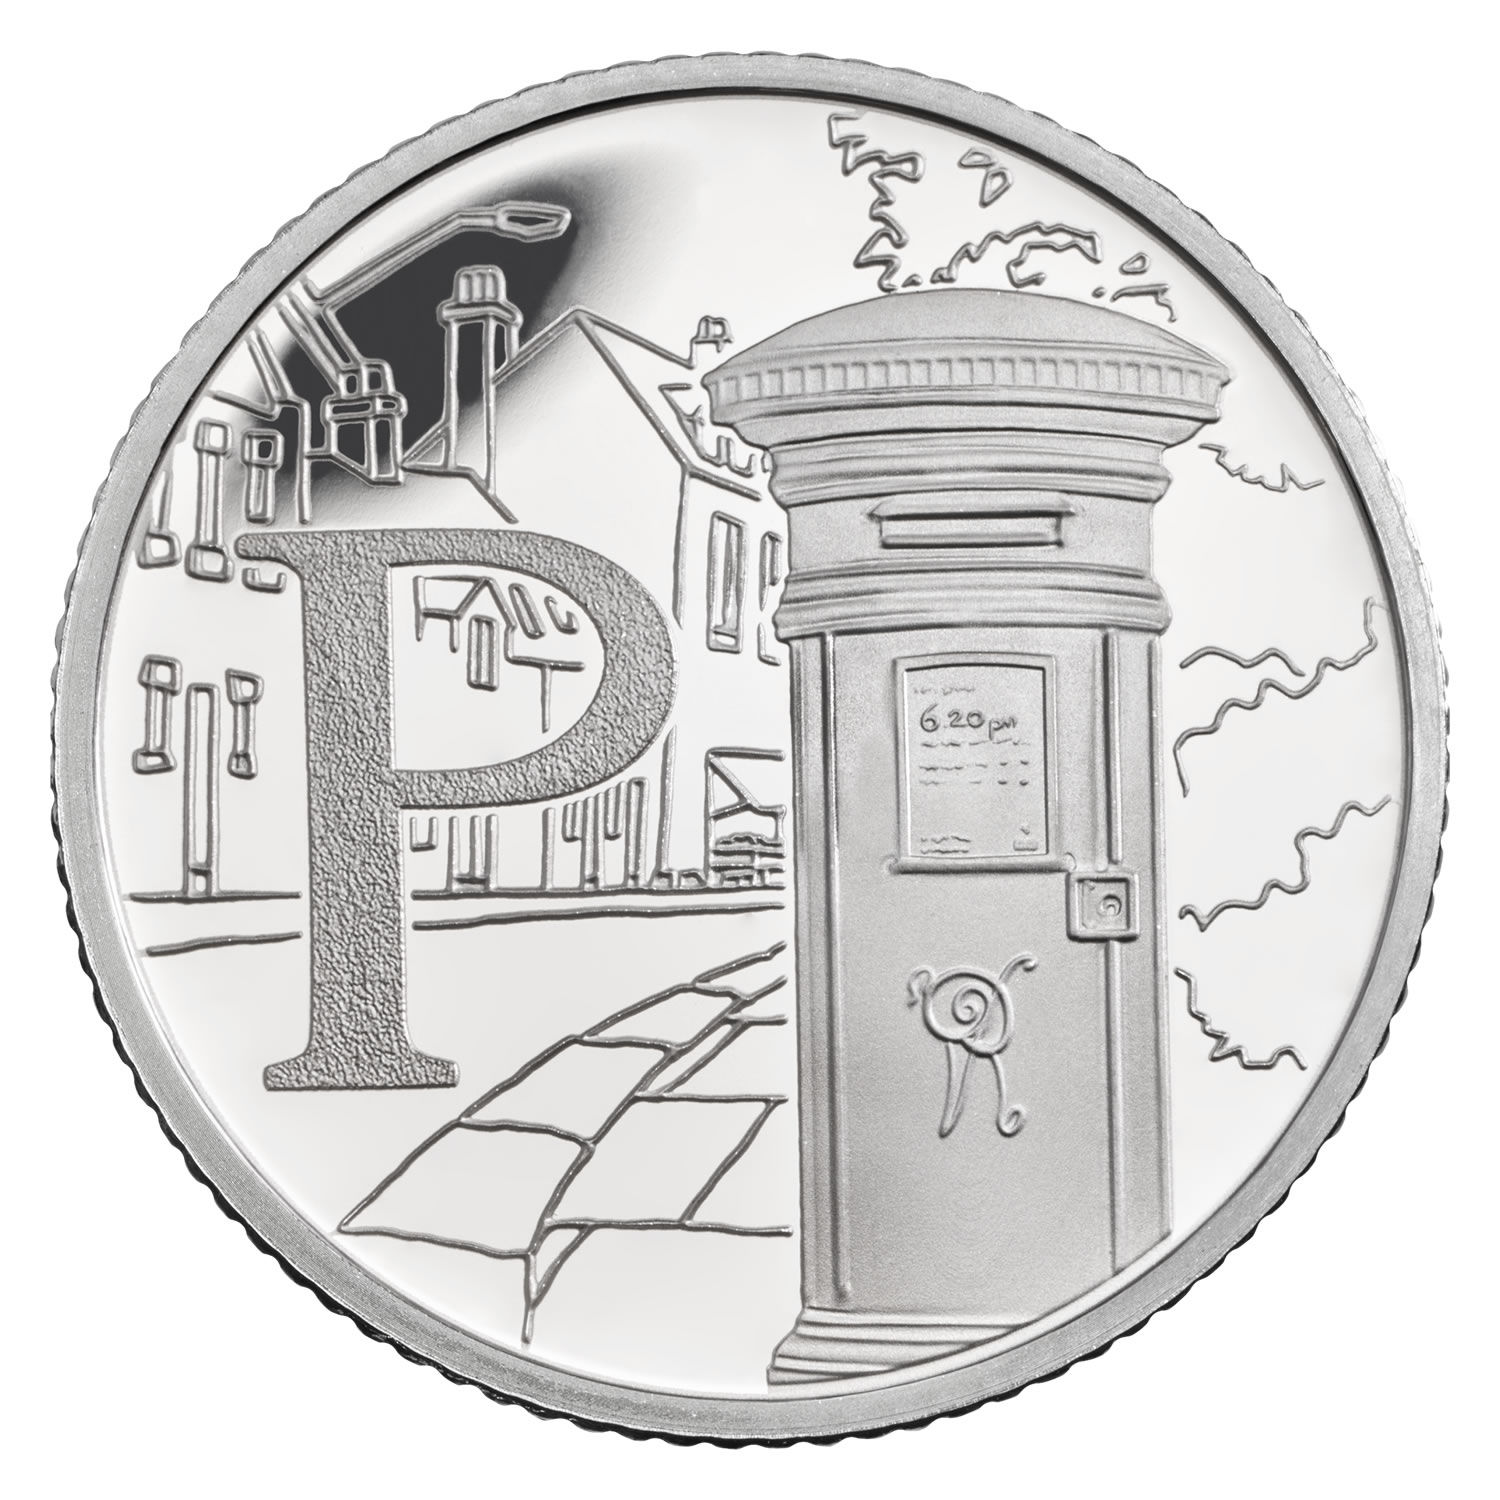 P - Postbox 2018 UK 10p Silver Proof Coin